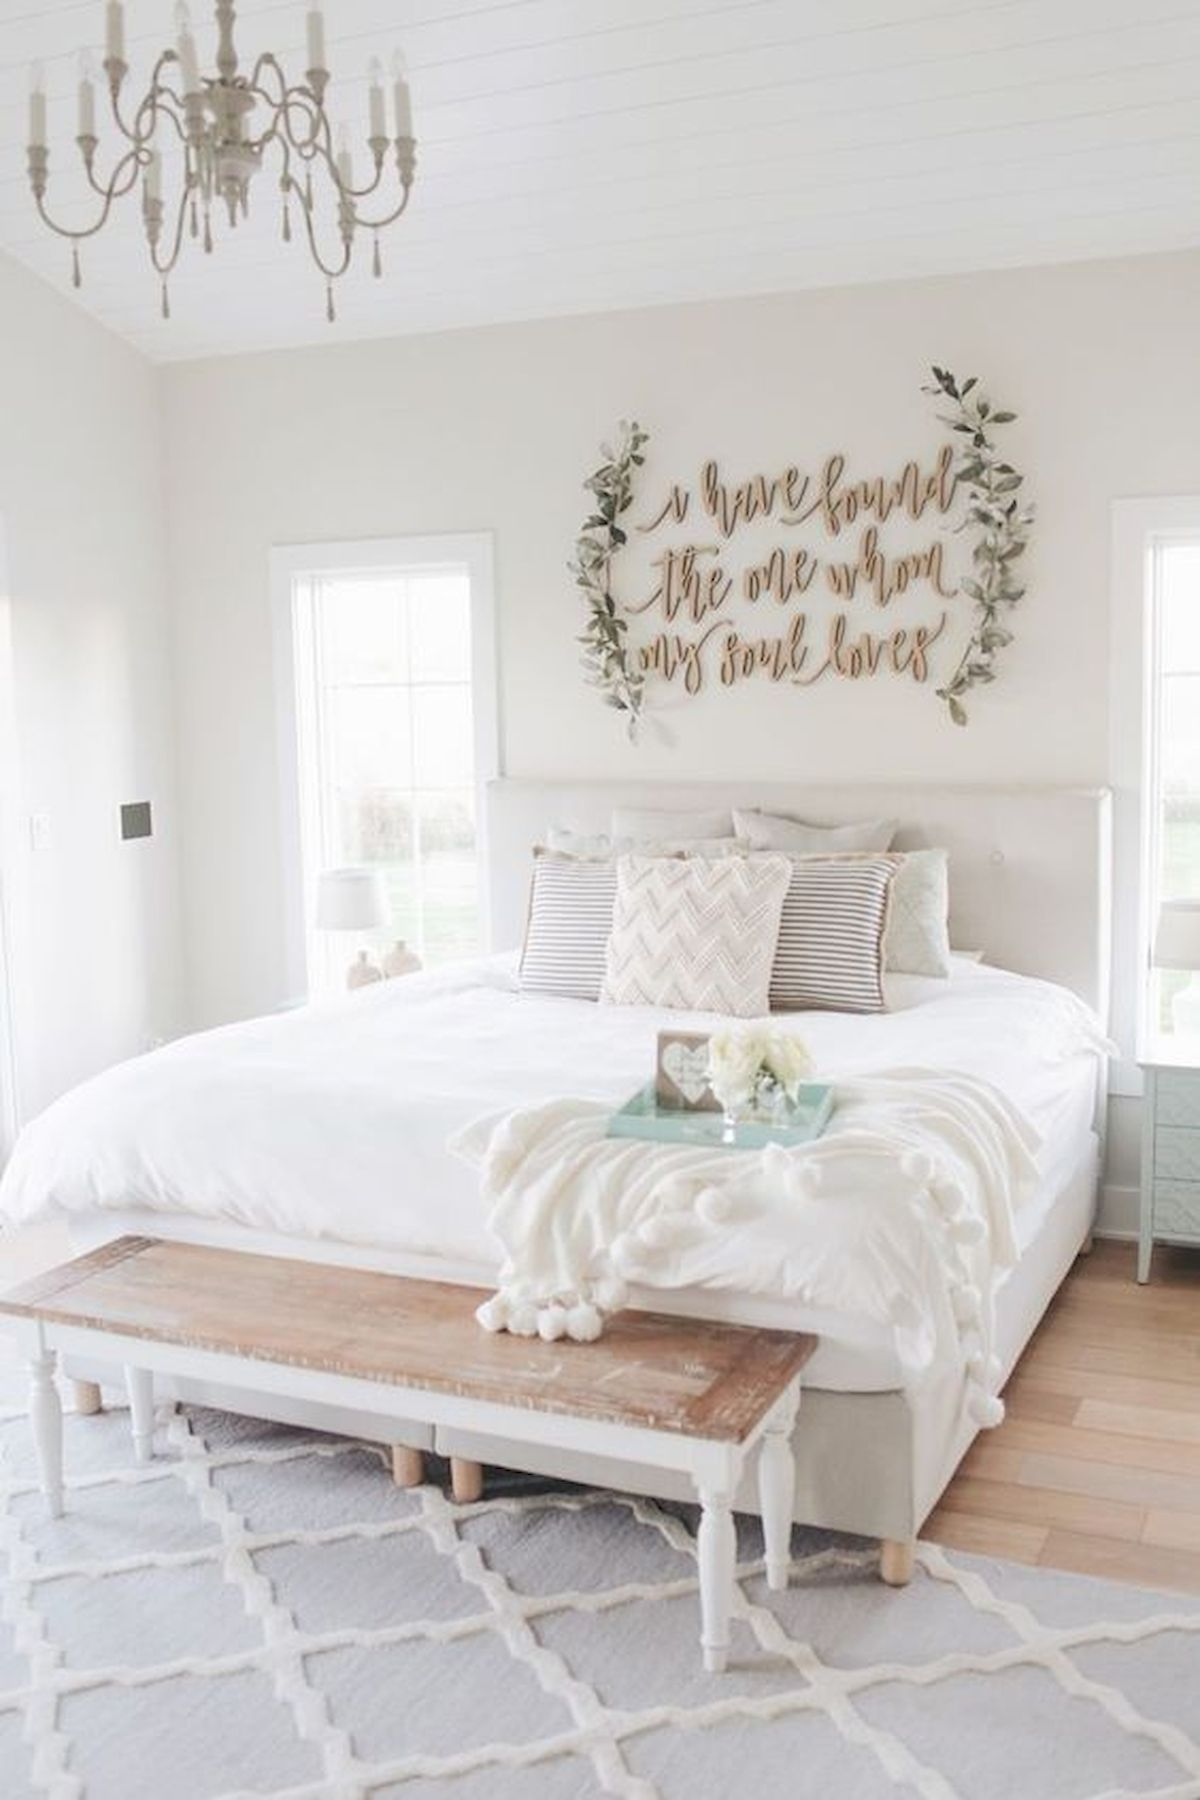 50 Awesome Wall Decor Ideas for bedroom (47)